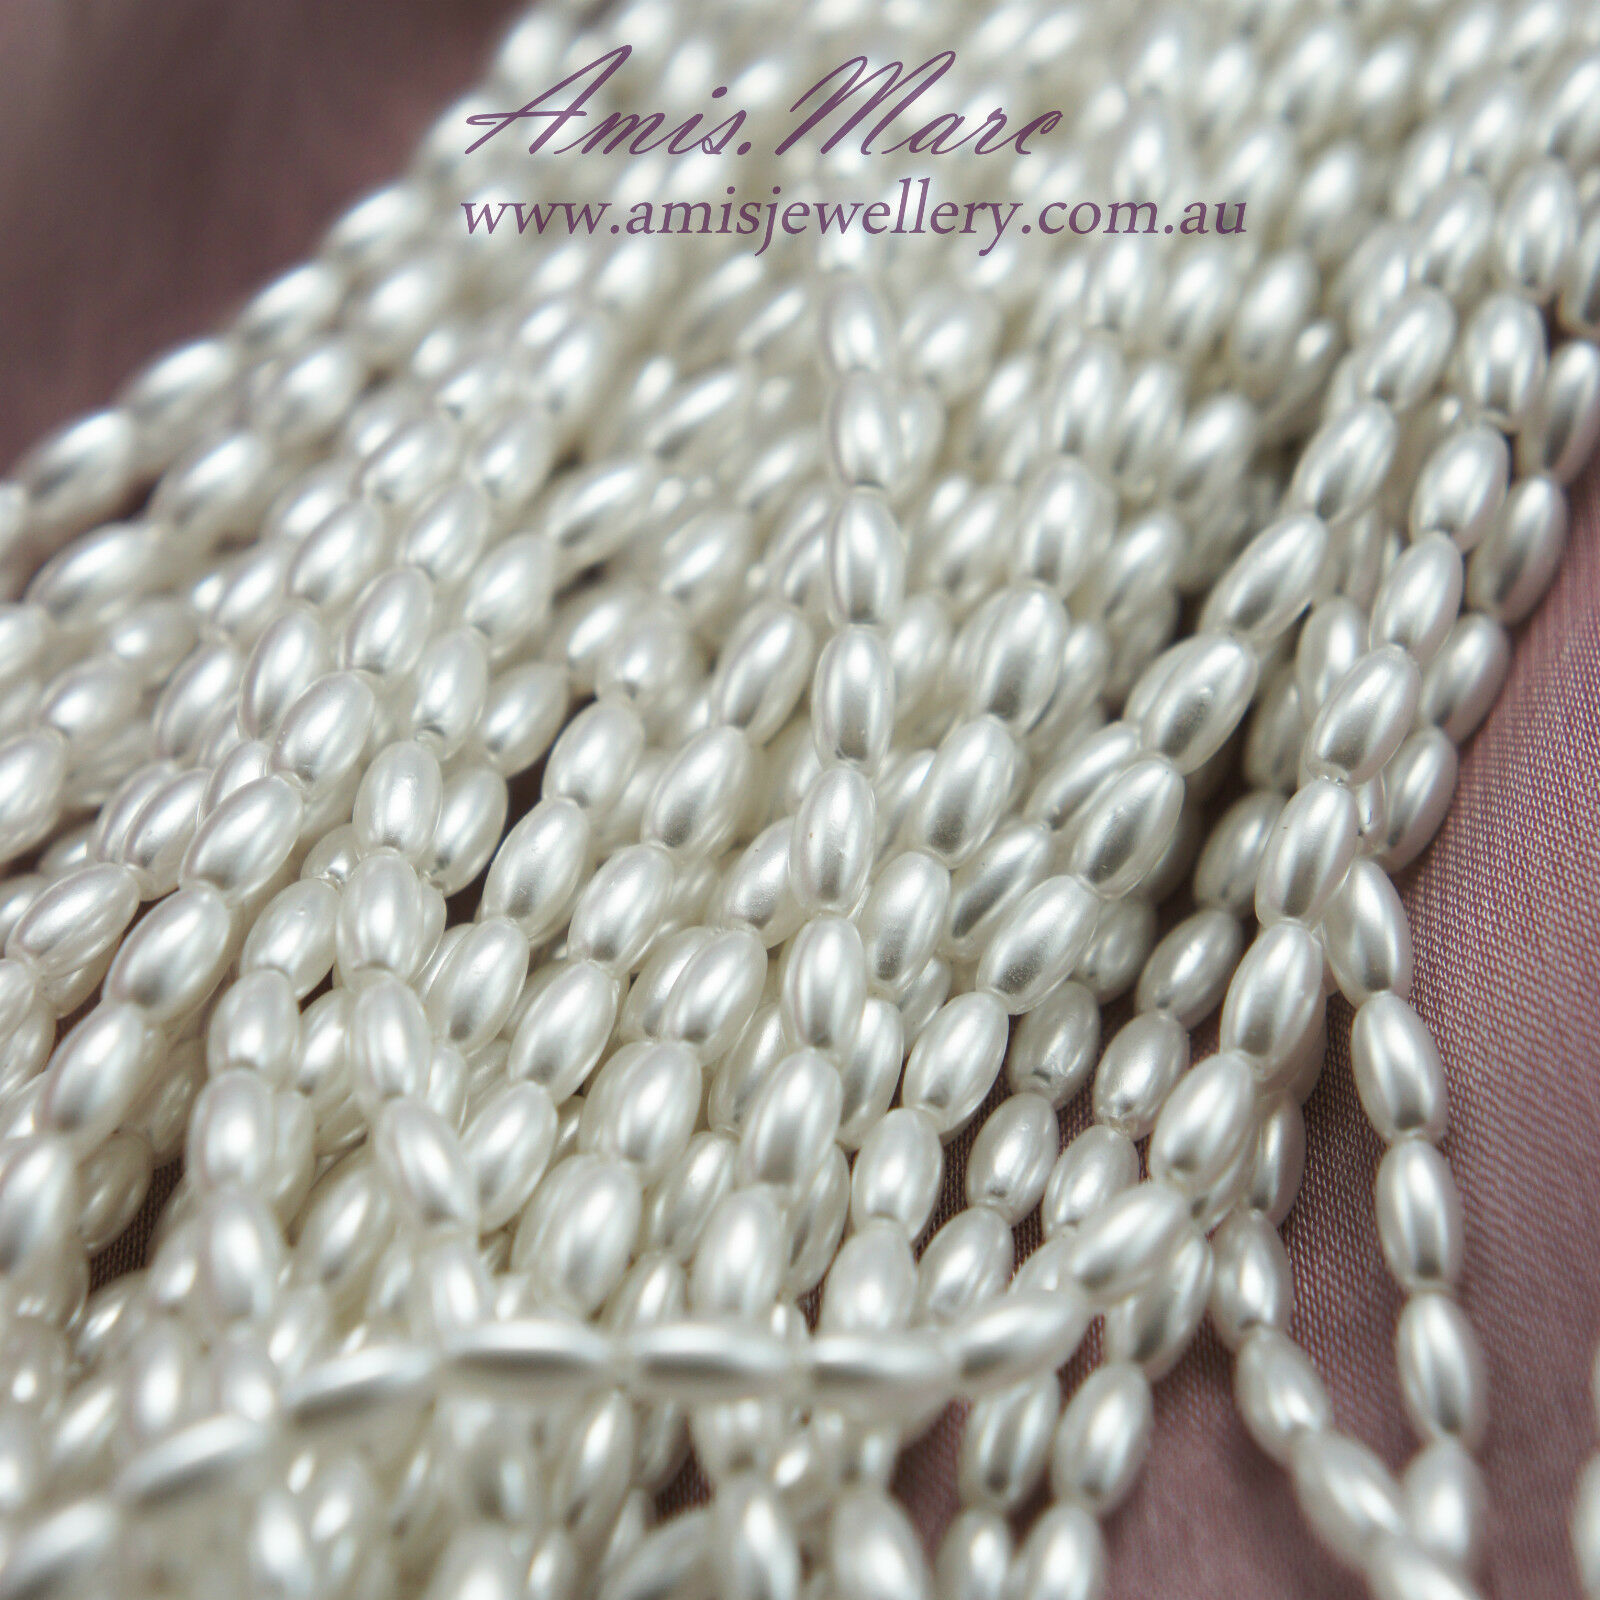 *48beads 8x20mm cream color Imitation Loose Acrylic Tear Drop Pearl Beads*